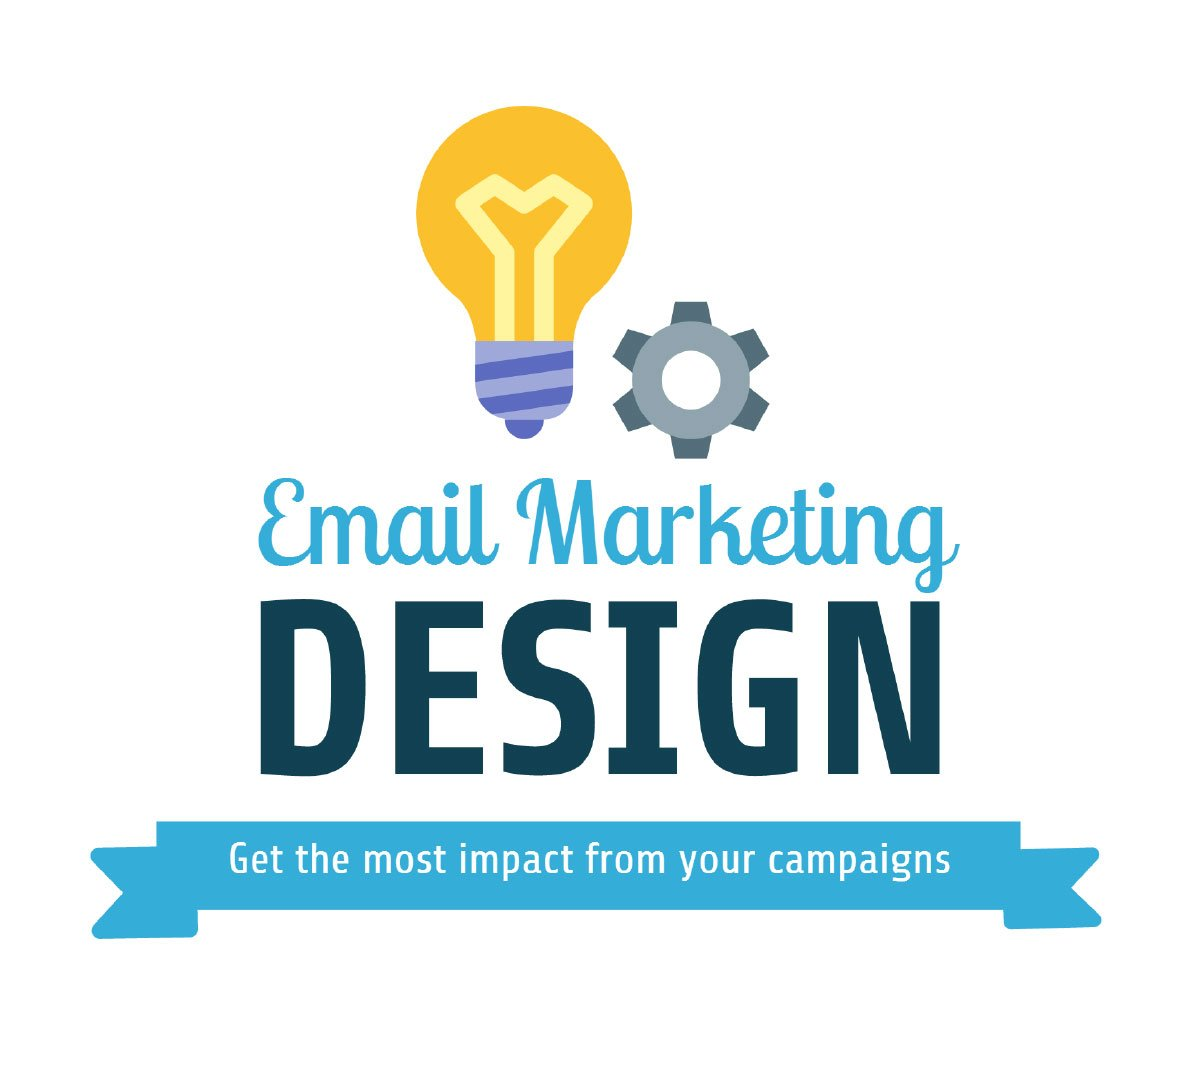 Email Marketing Design Best Practices eCommerce Consulting - Magento Experts - Stone Edge Support